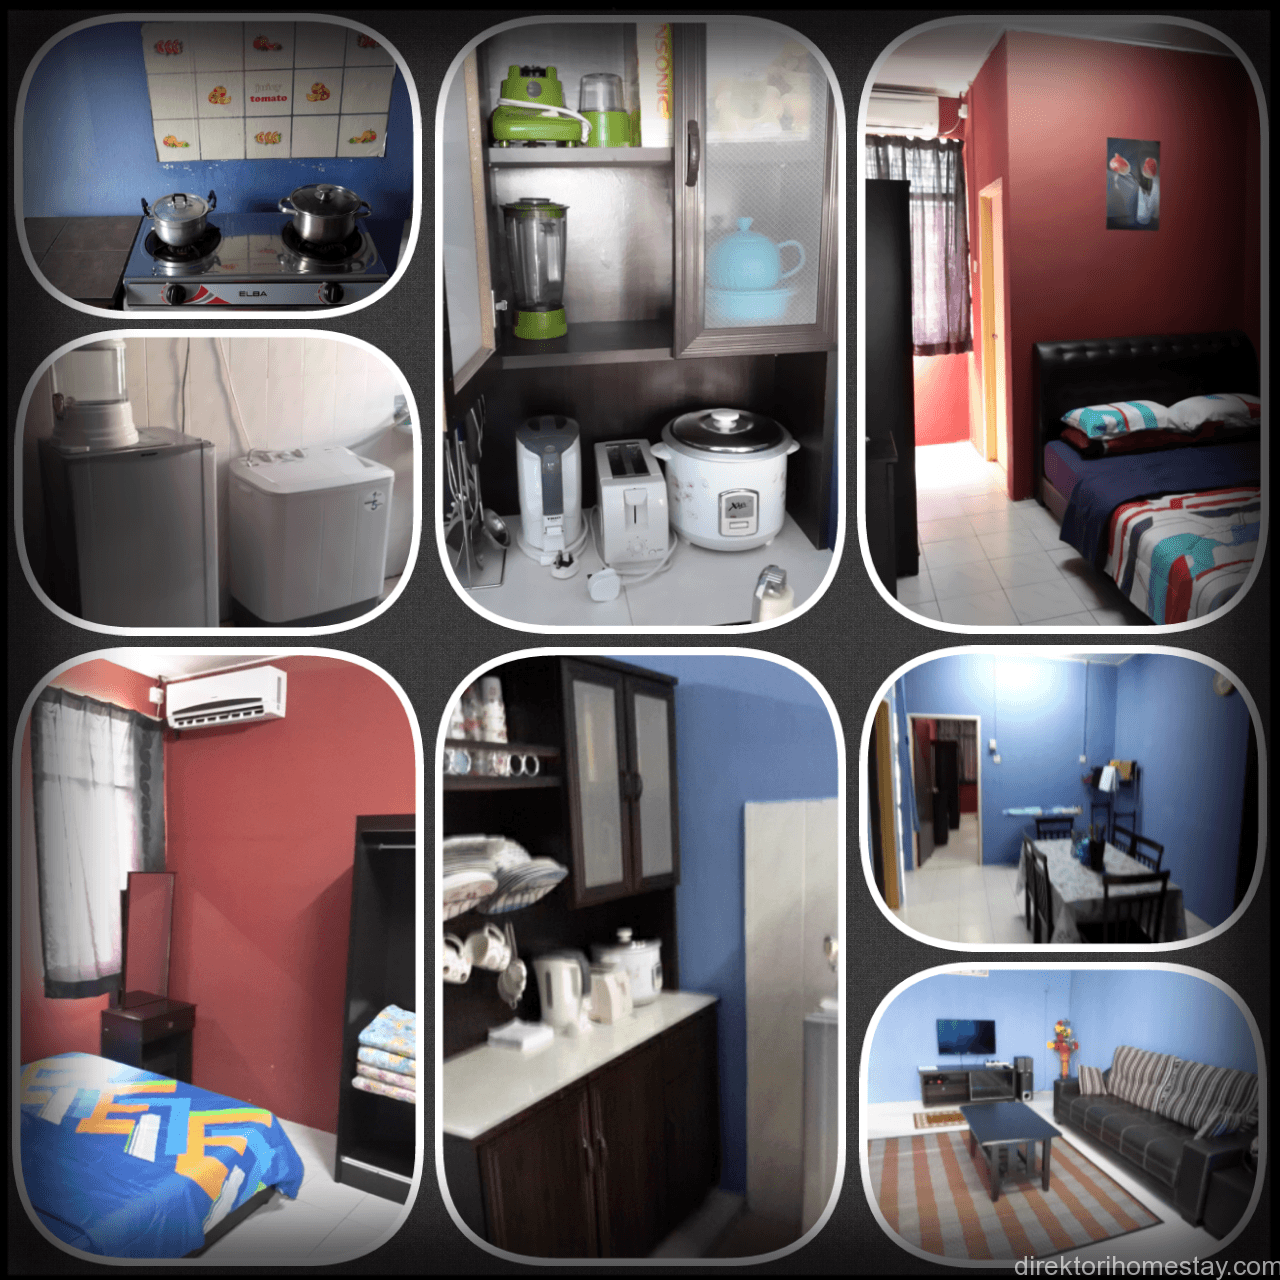 tmp_15071-Photo-Collage-Maker_1A4jkx-51714699